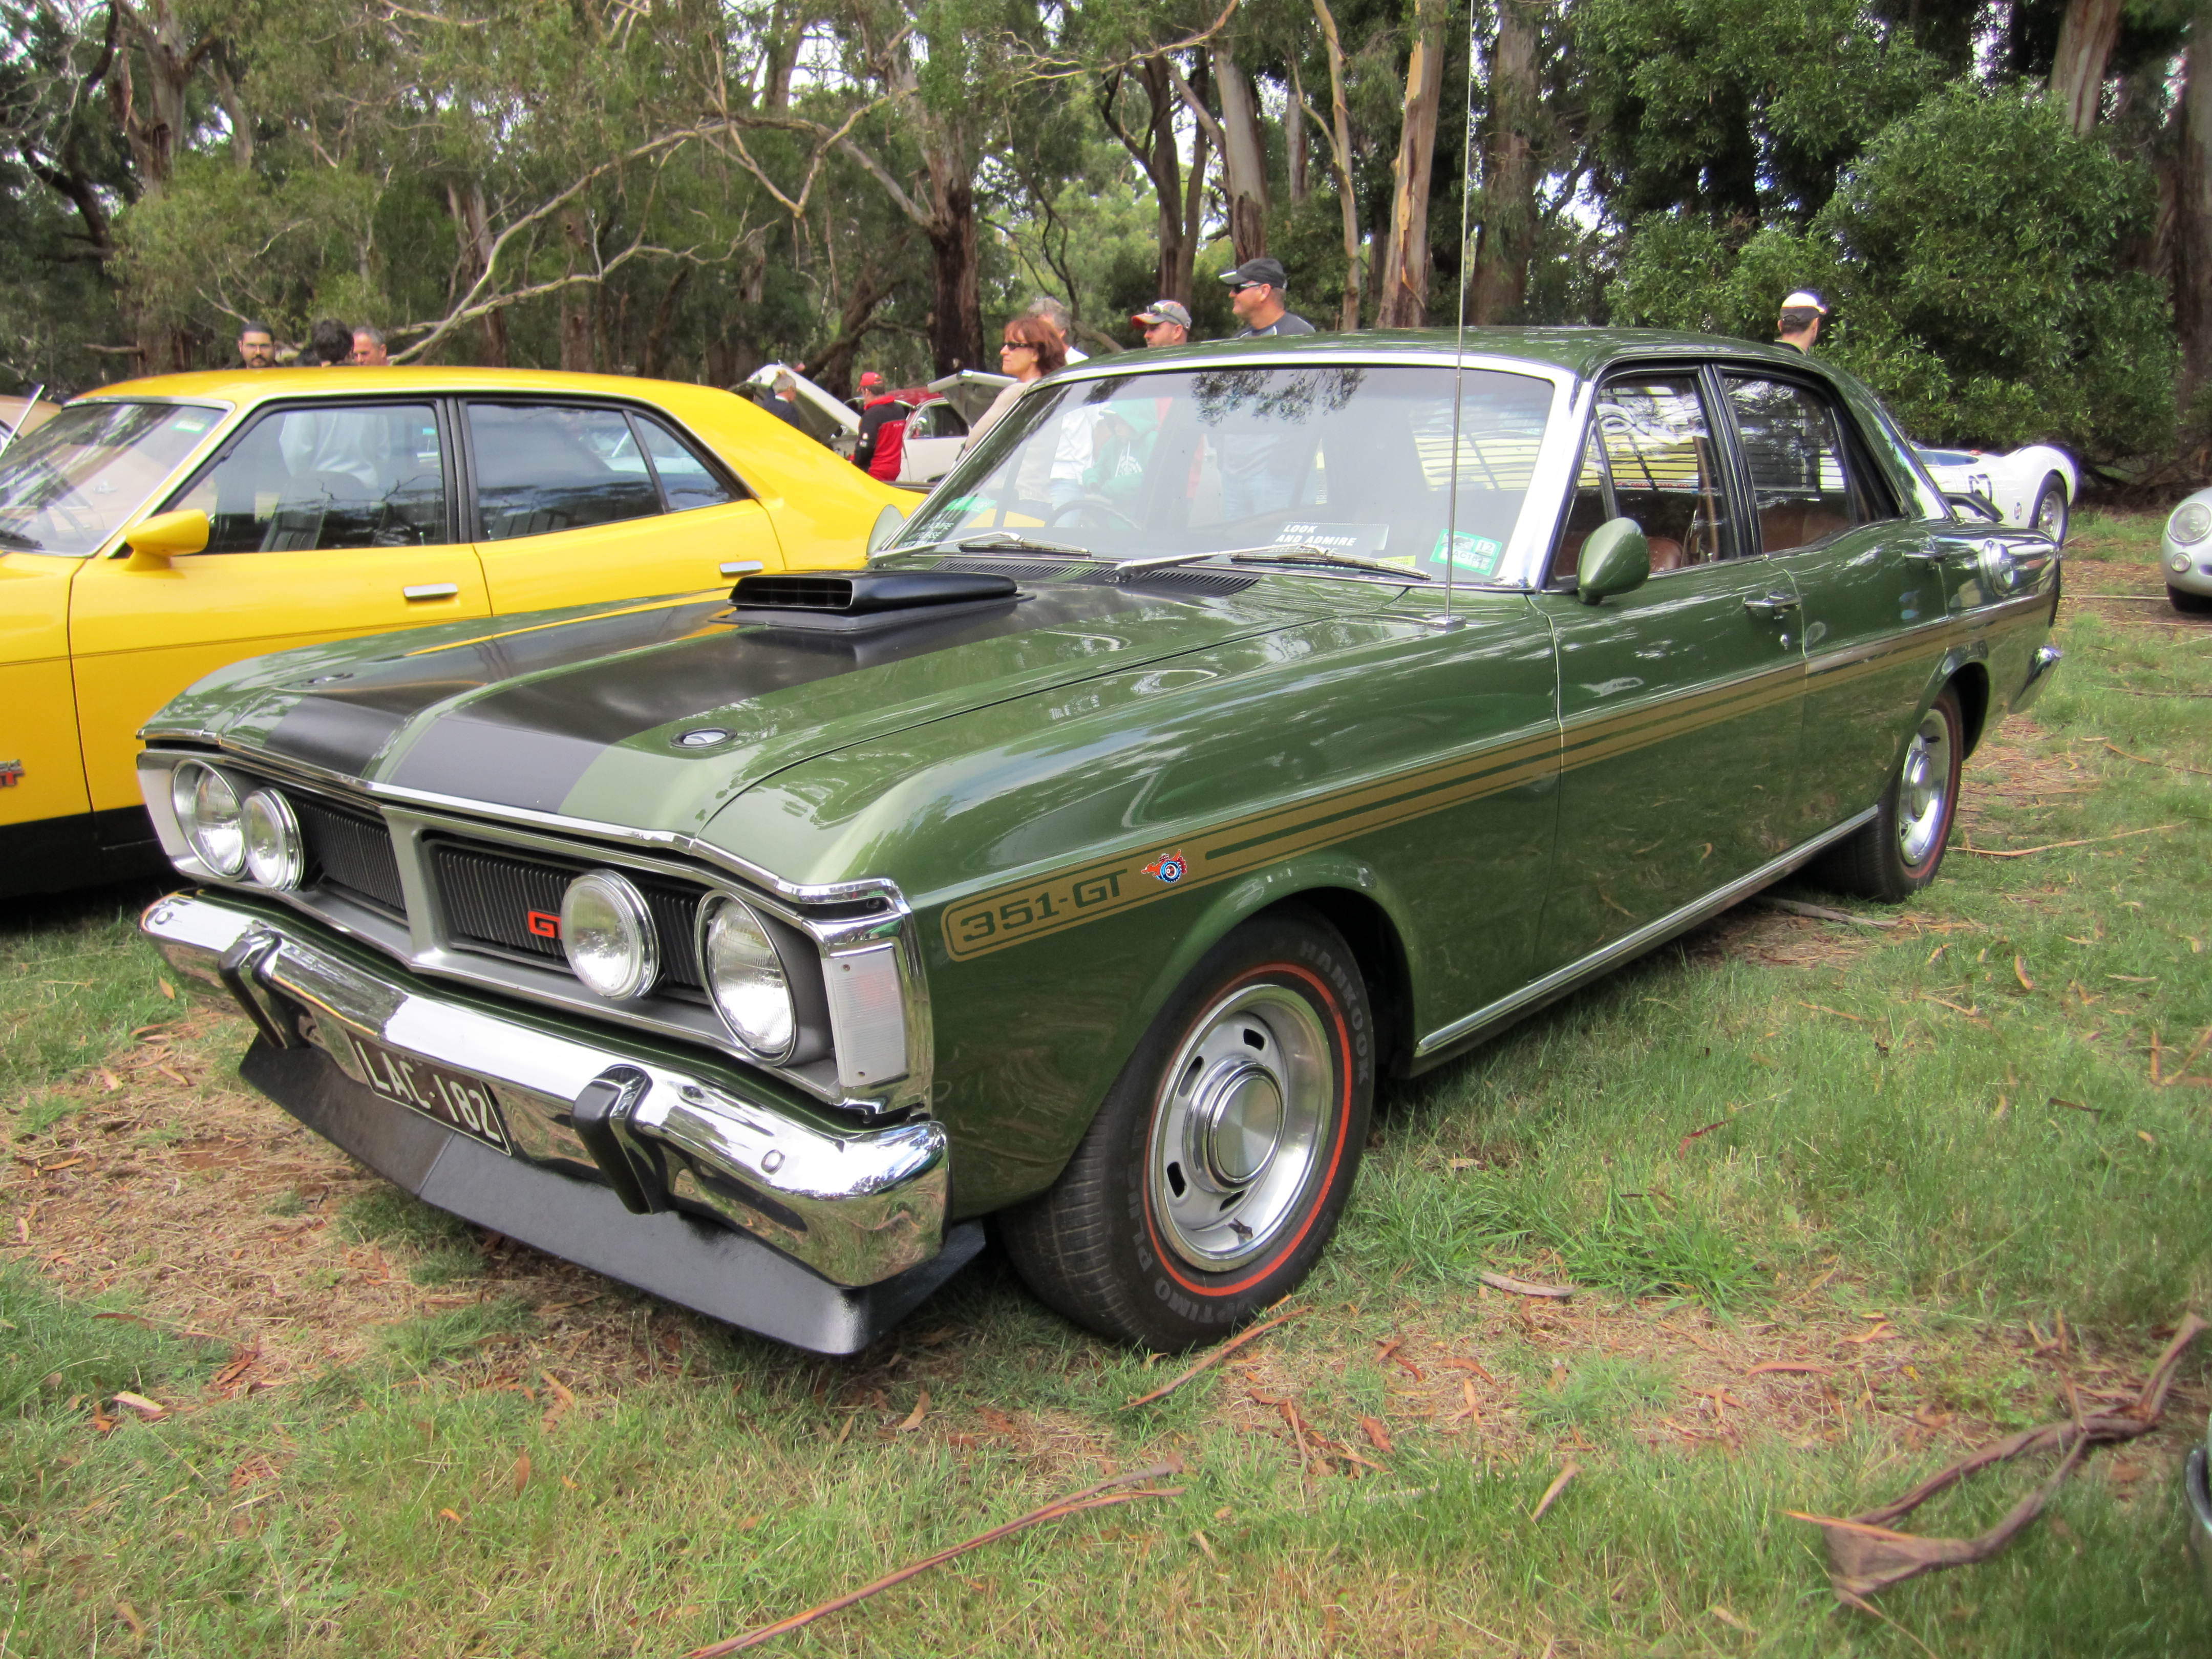 File:Ford Falcon XY GT Jewel green.jpg - Wikimedia Commons